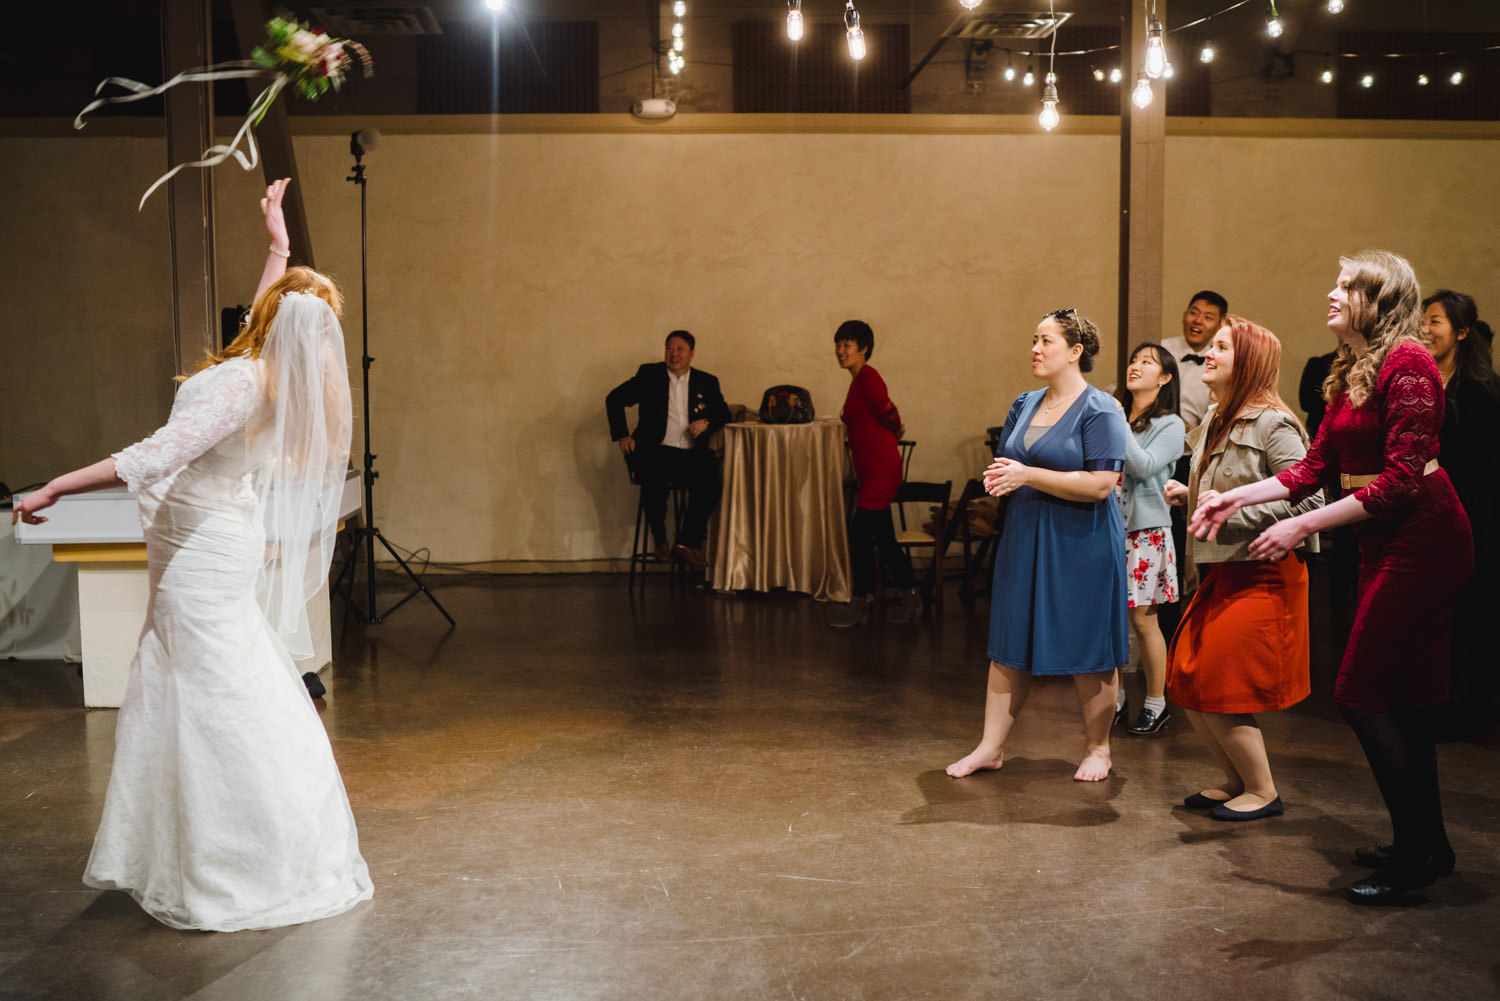 Pierpont Place wedding bride throwing bouquet photo